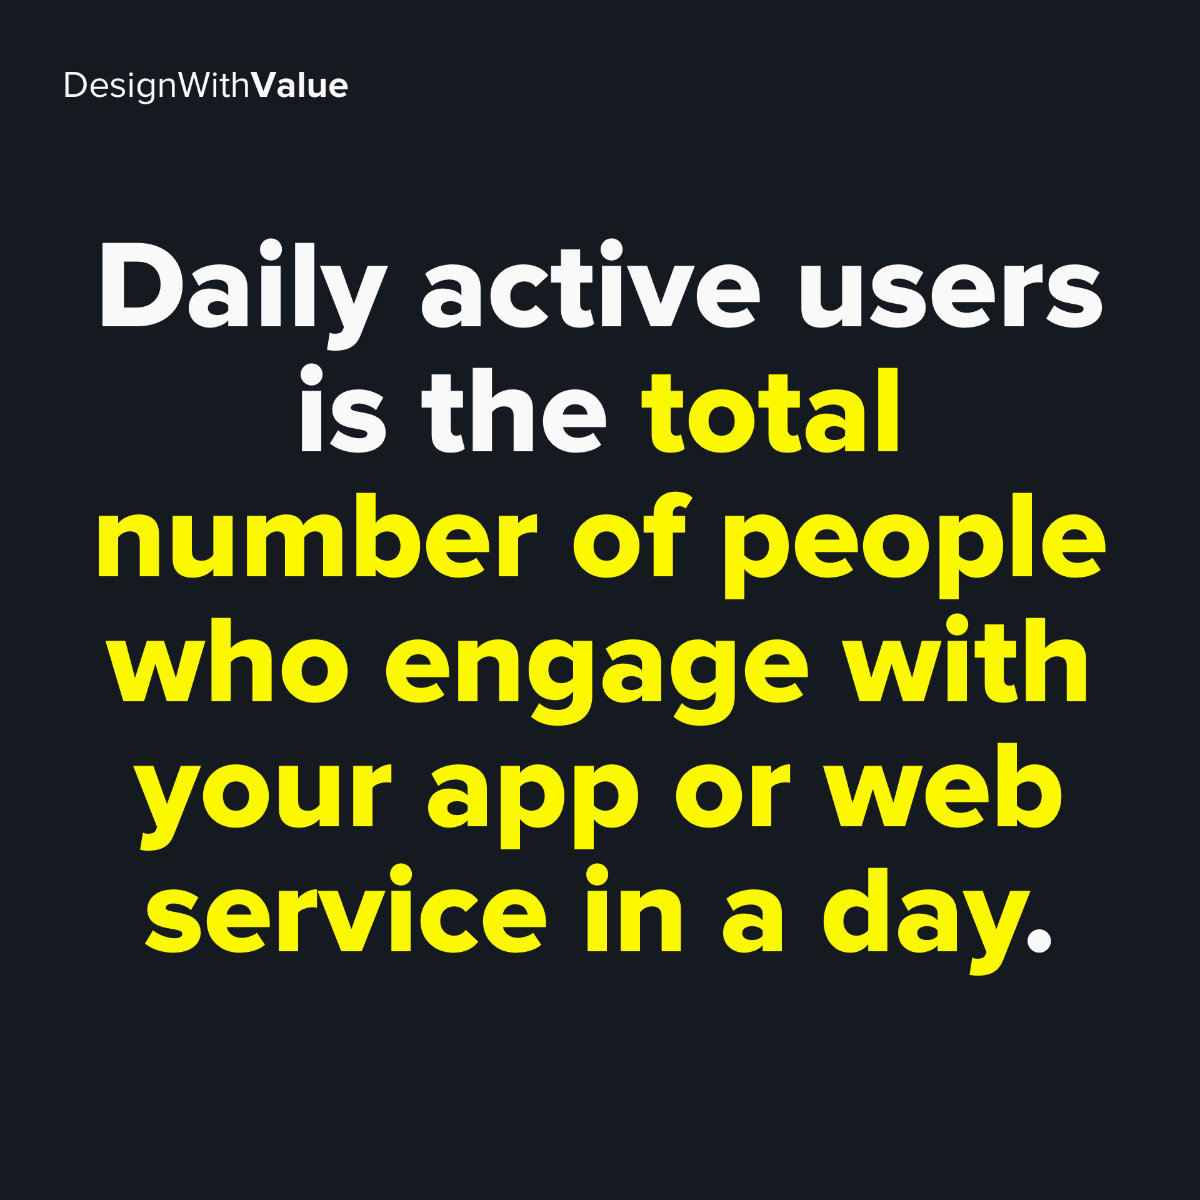 Daily active users is the total number of people who engage with your app or web service in a day